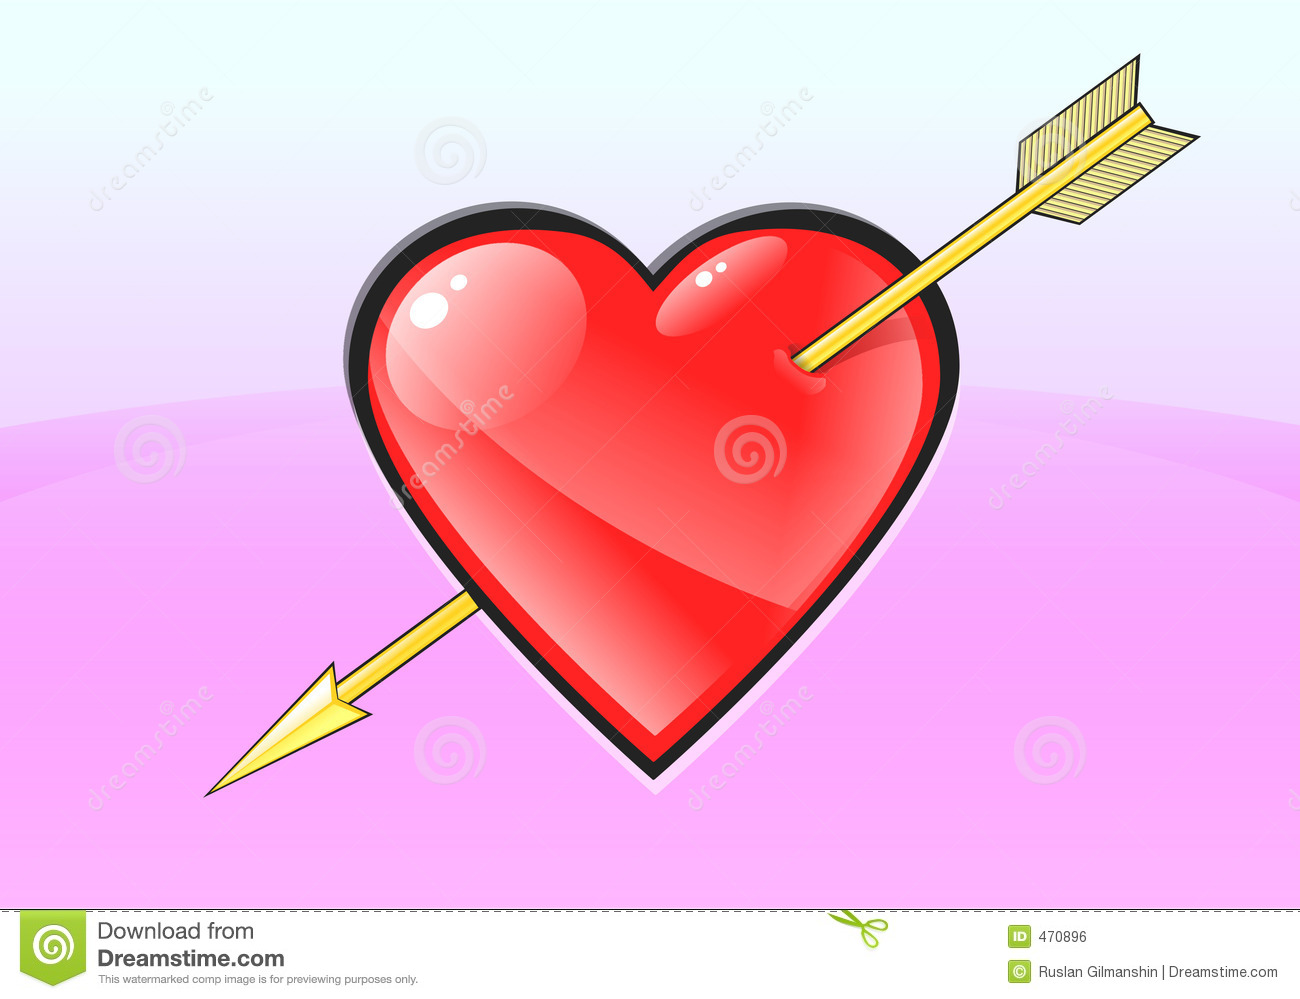 Download Heart stock illustration. Illustration of highlight, background - 470896